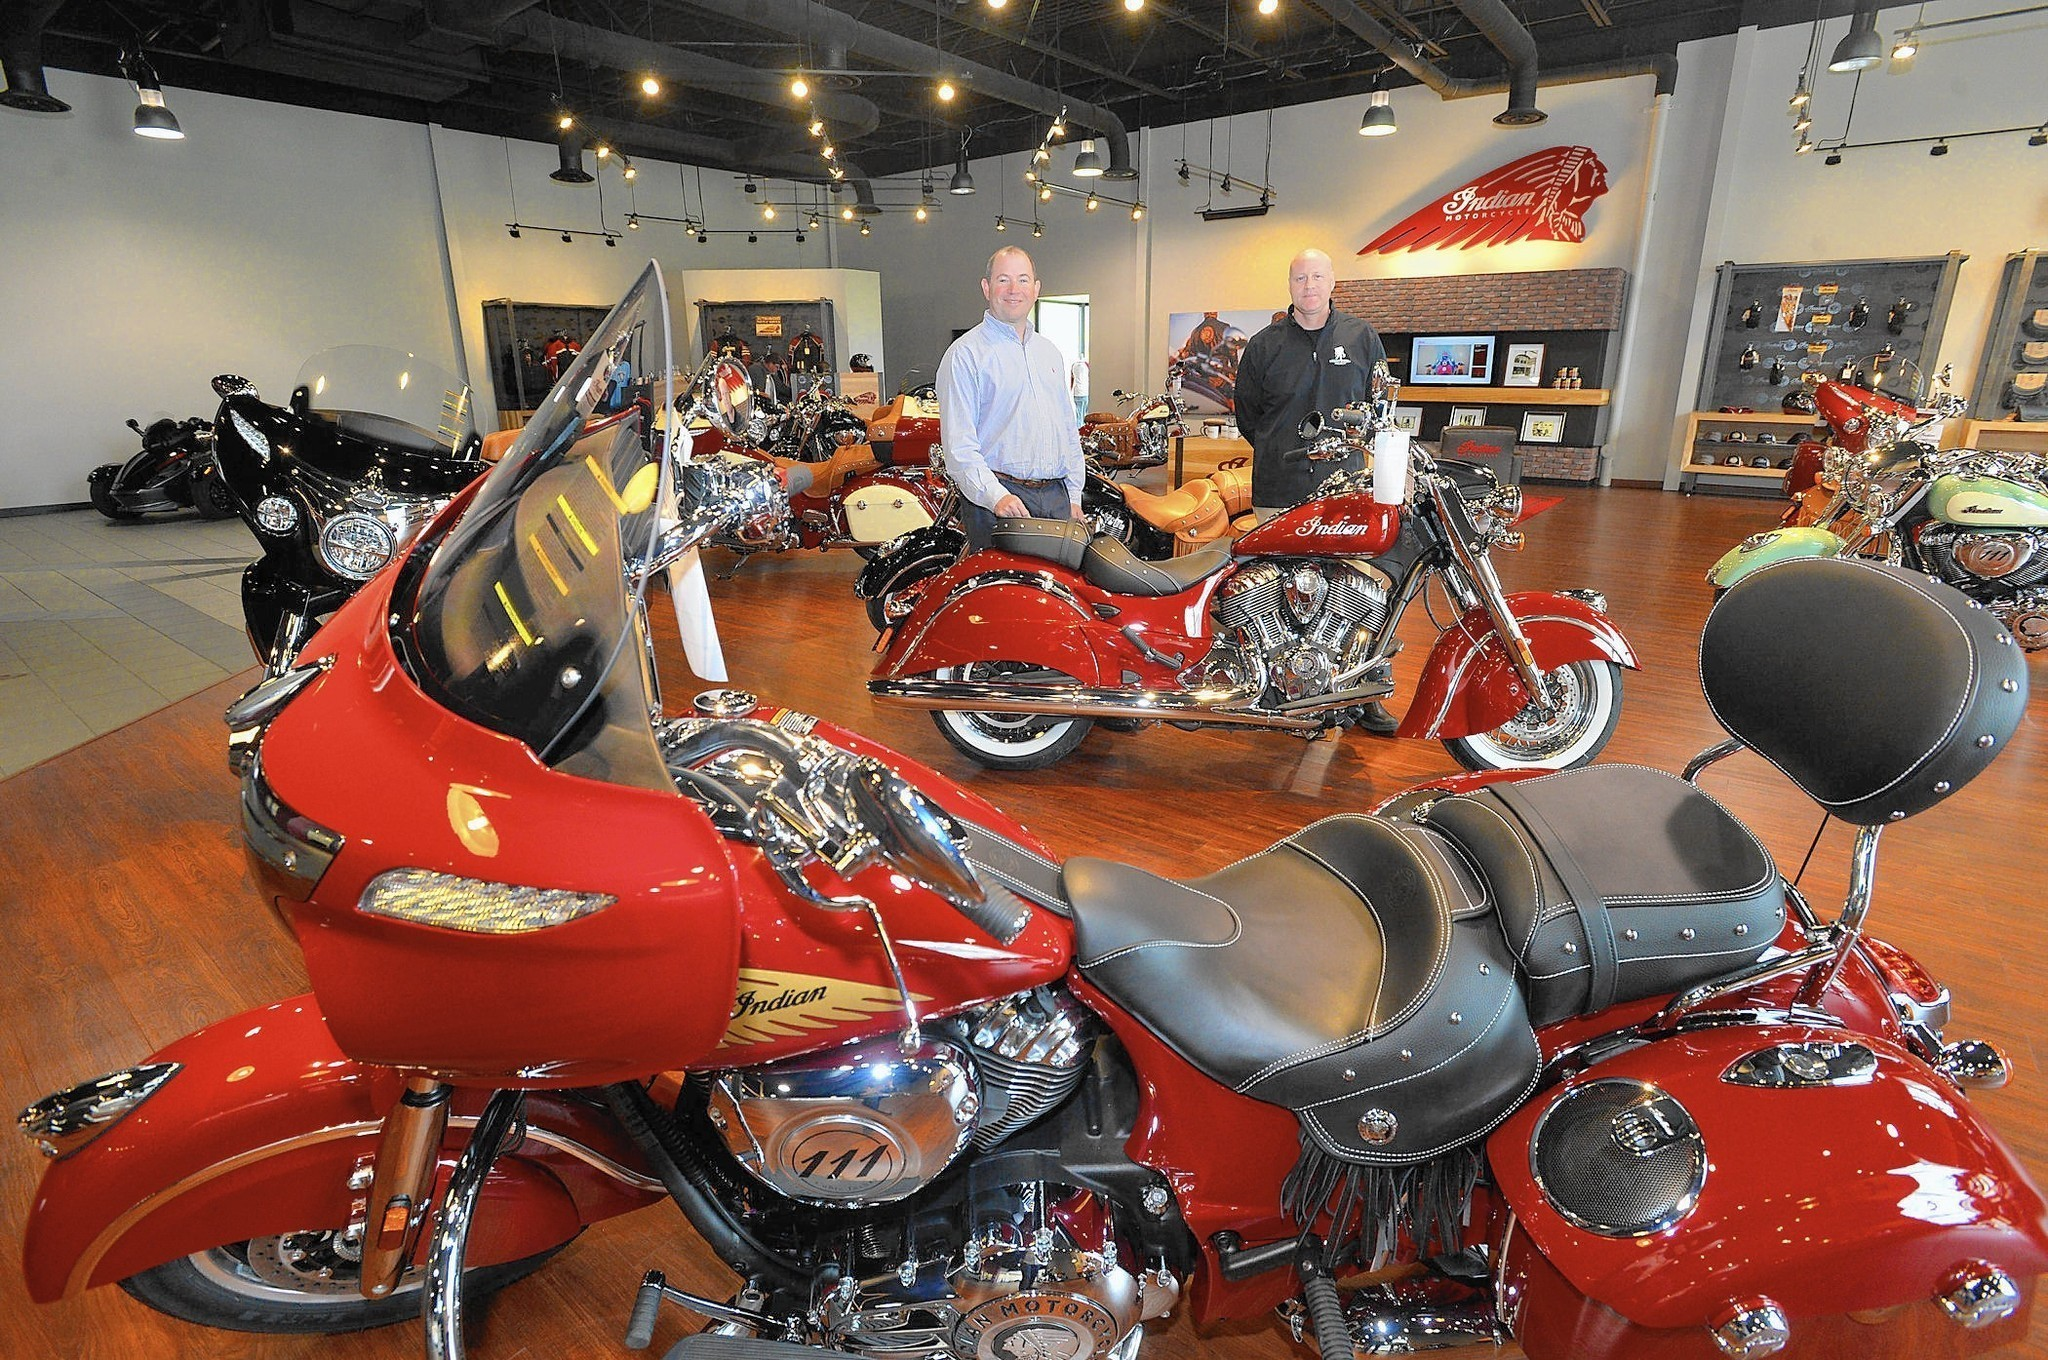 Indian Motorcycle Of Allentown Opens In Center Valley Lehigh